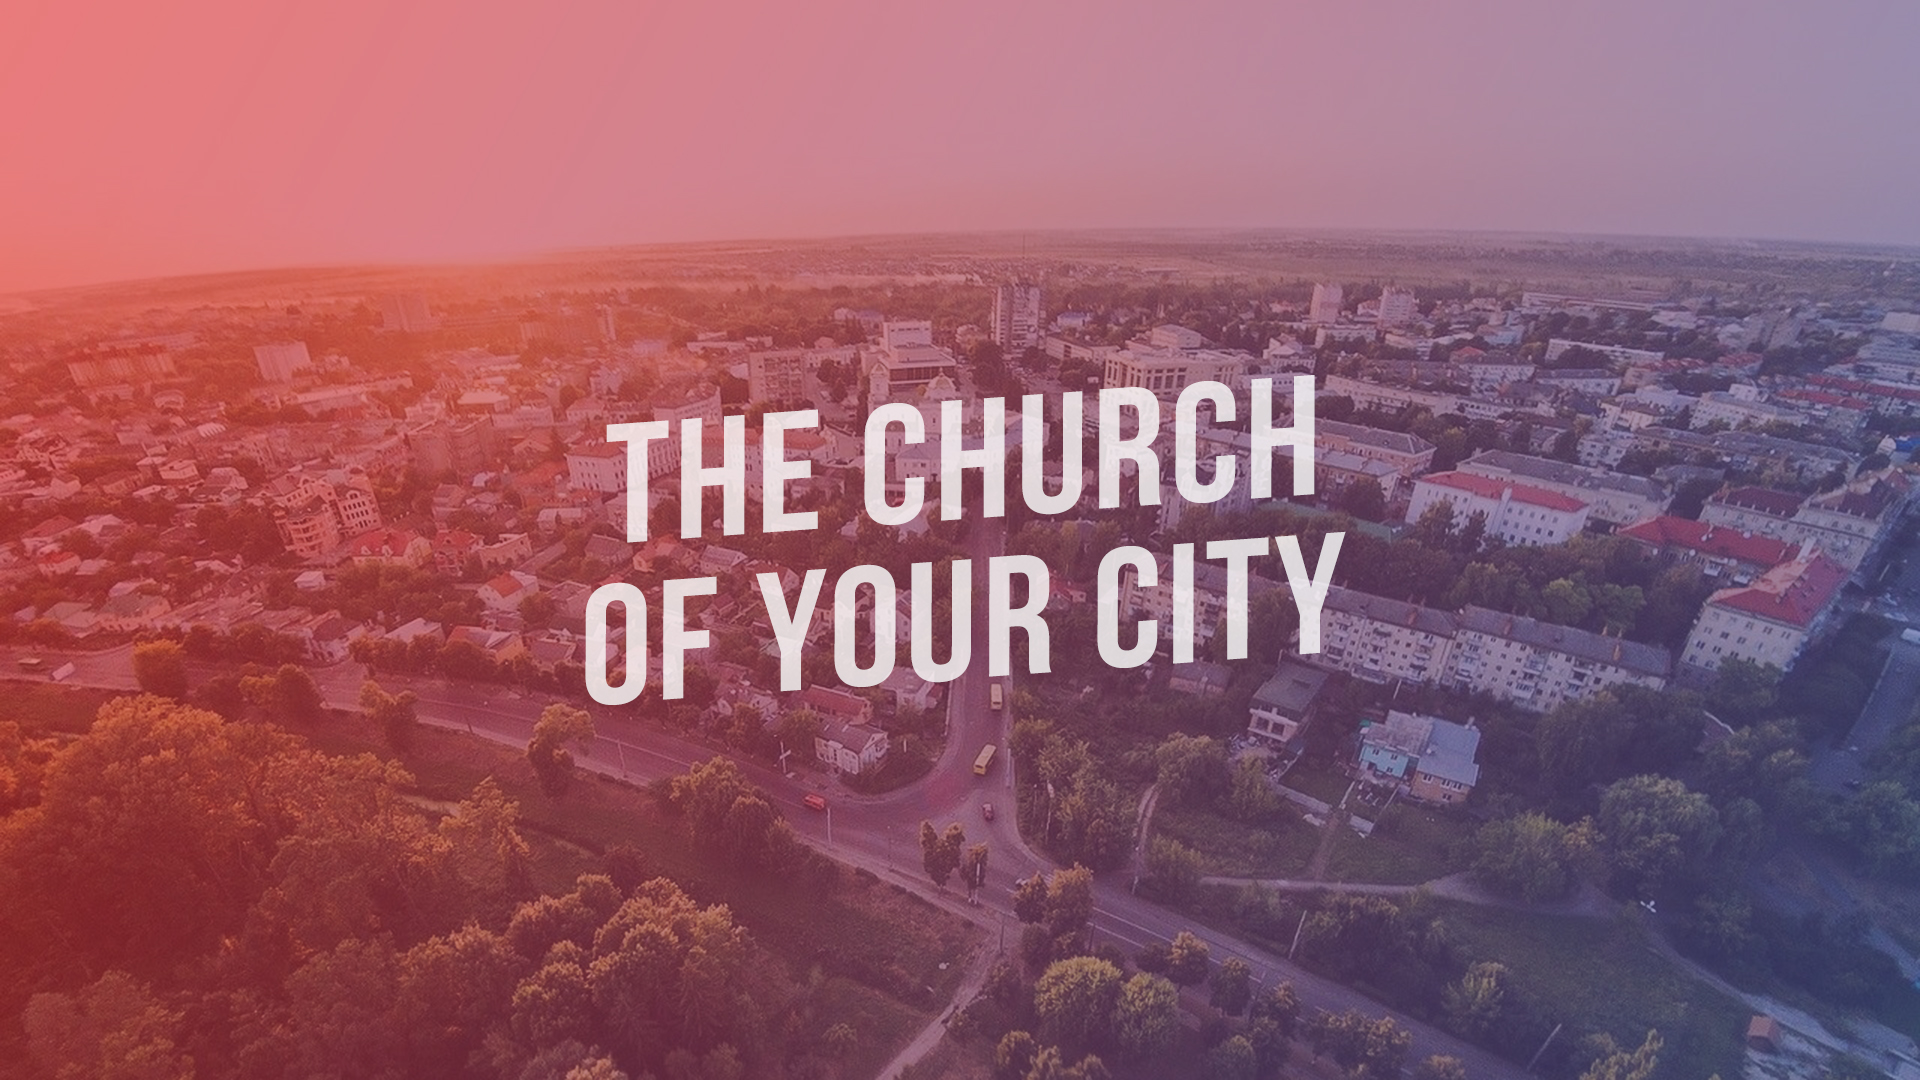 CHURCH OF YOUR CITY